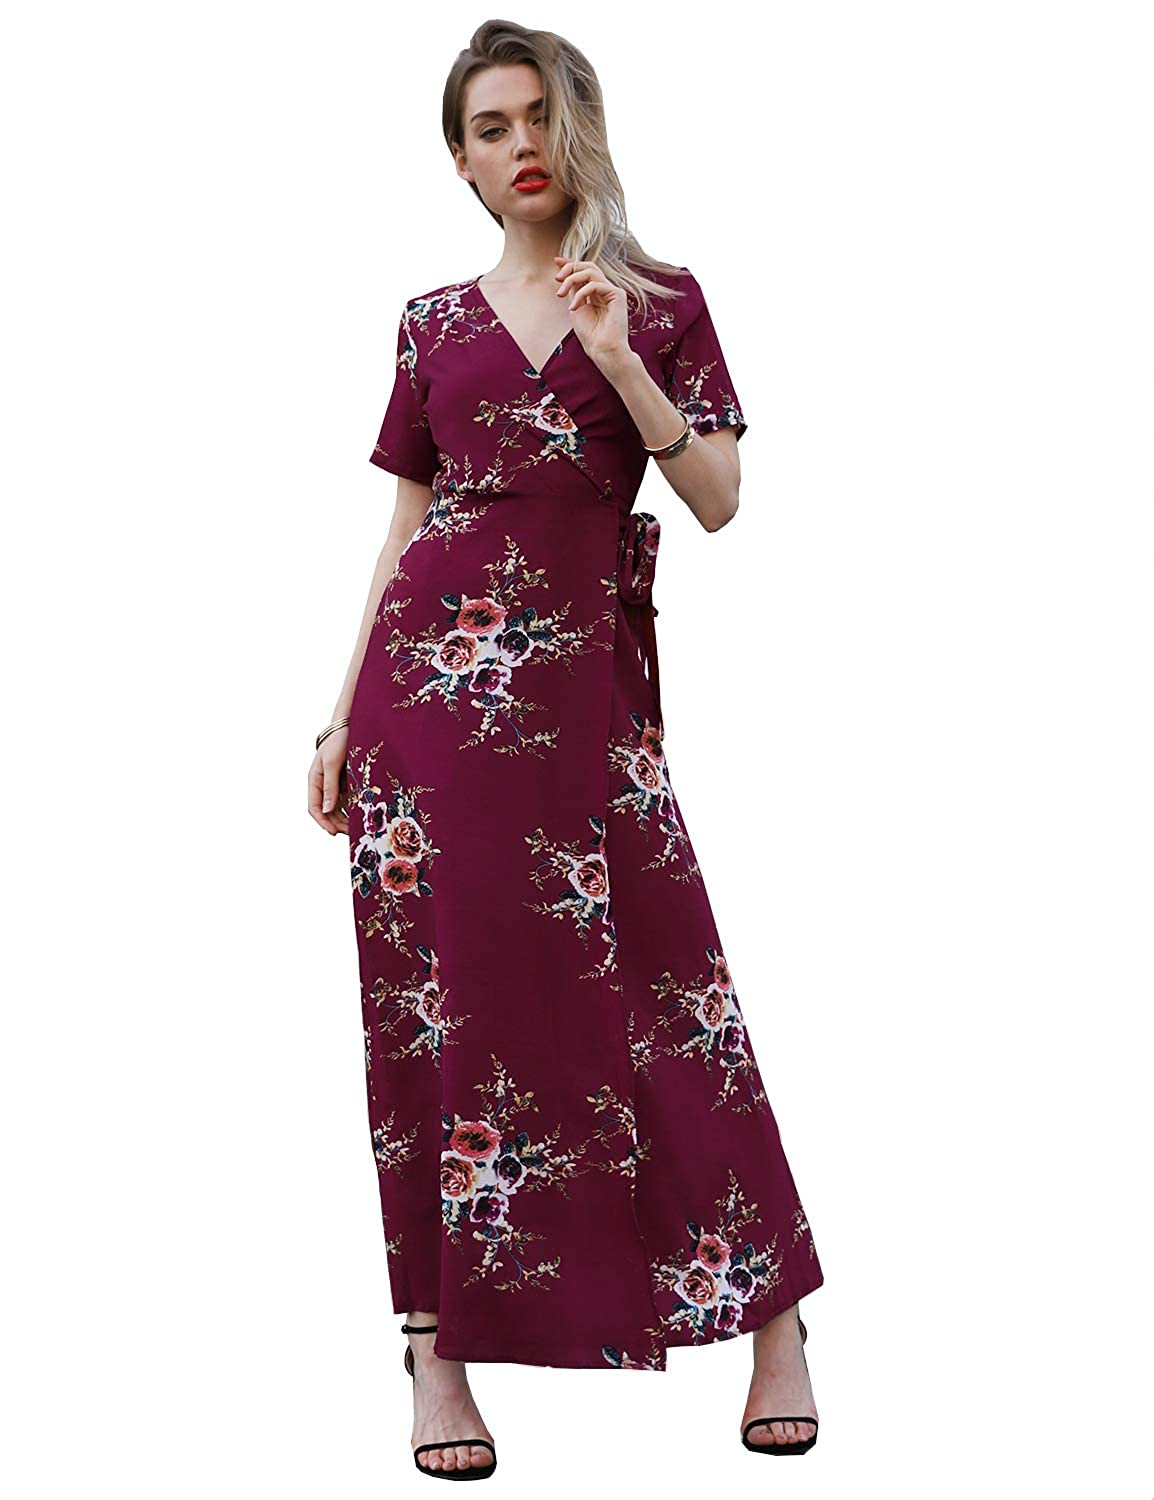 d234658785f6 Blooming Jelly Casual Short Sleeve V Neck Floral Tie Waist Wrap Long Maxi  Dress with Belt at Amazon Women's Clothing store: